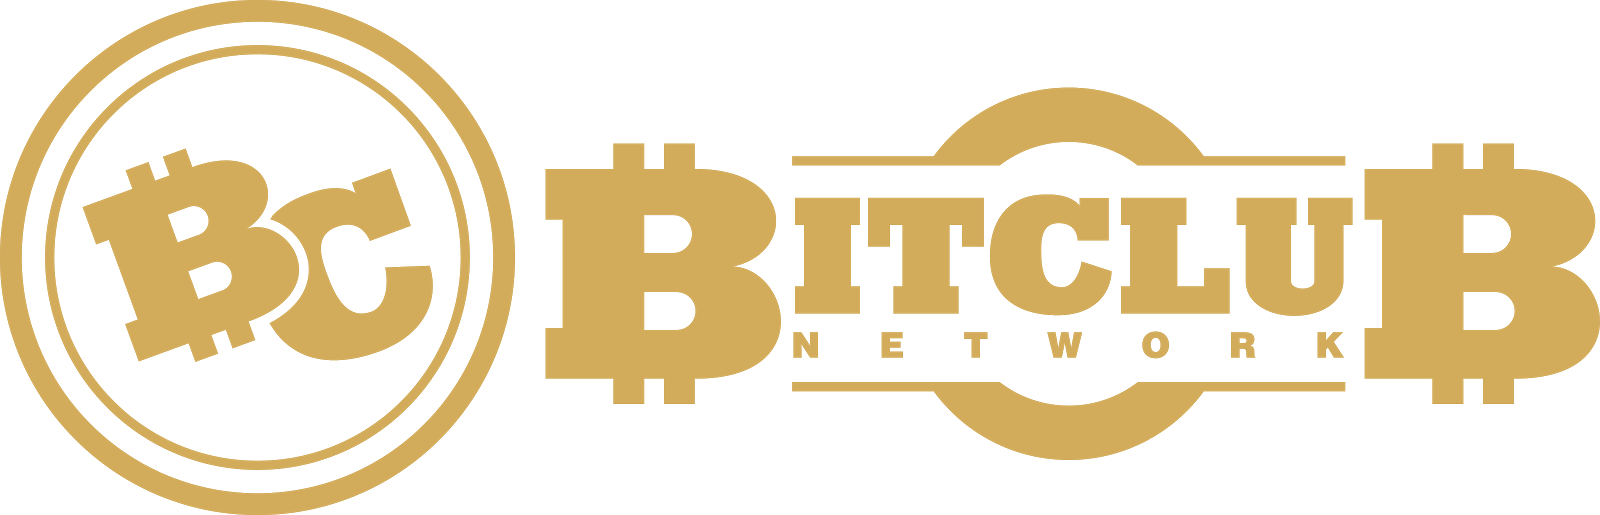 Mining Network Bitcoin Cryptocurrency Pool Cloud PNG Image